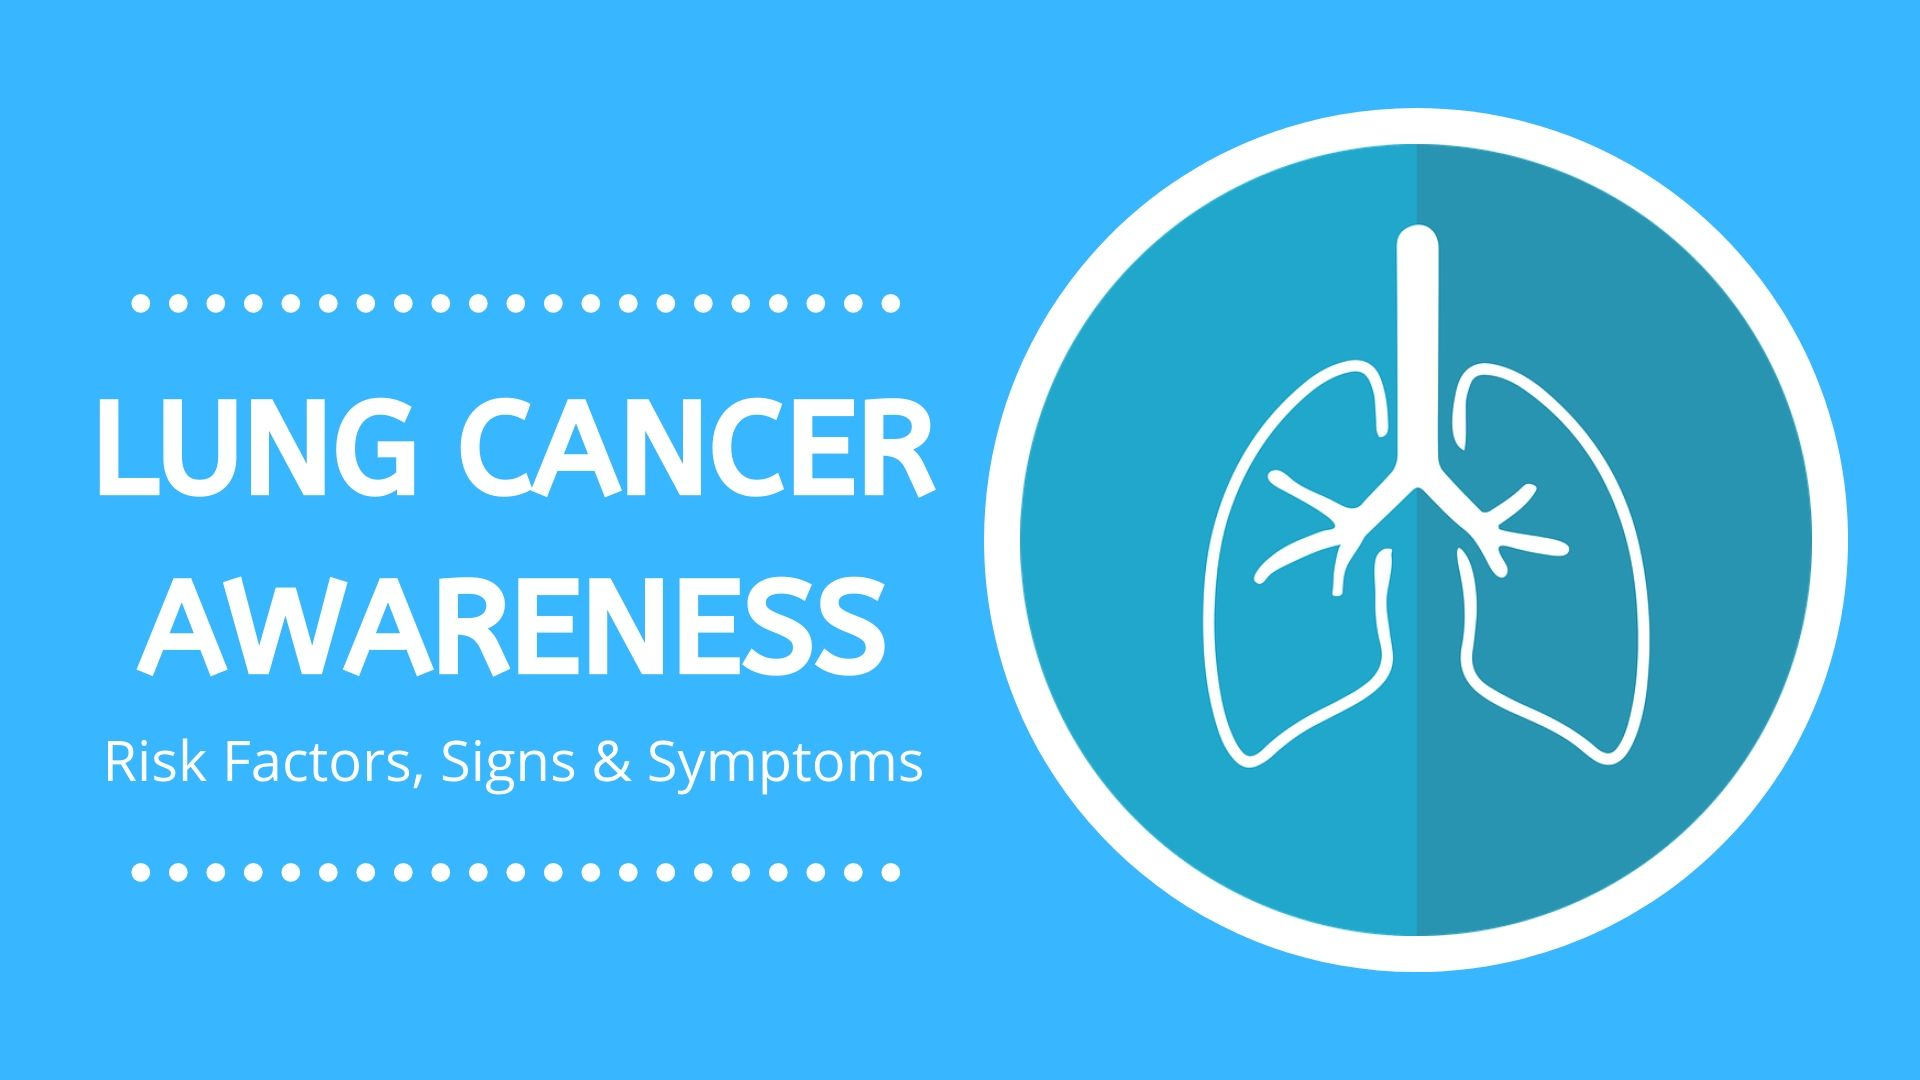 lung cancer awareness - risks factors signs symptoms